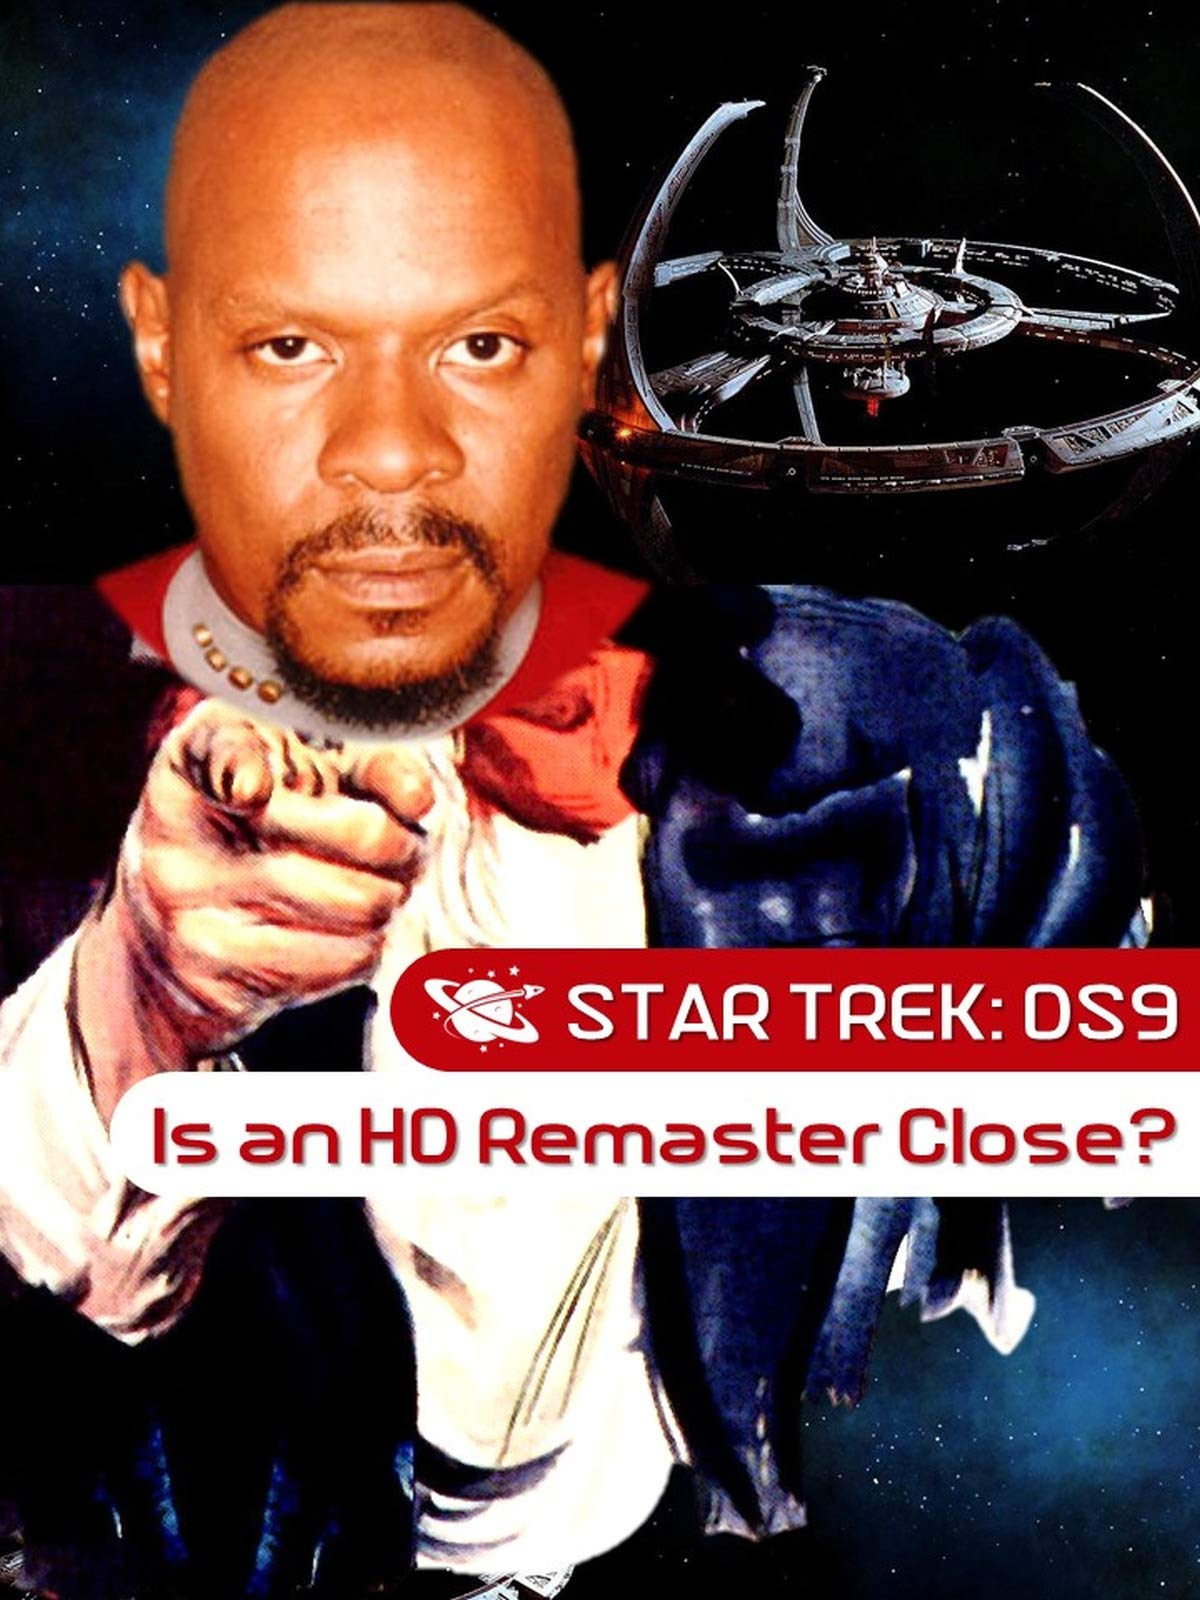 Star Trek: Deep Space Nine (DS9) - Is an HD Remaster Close? on Amazon Prime Video UK